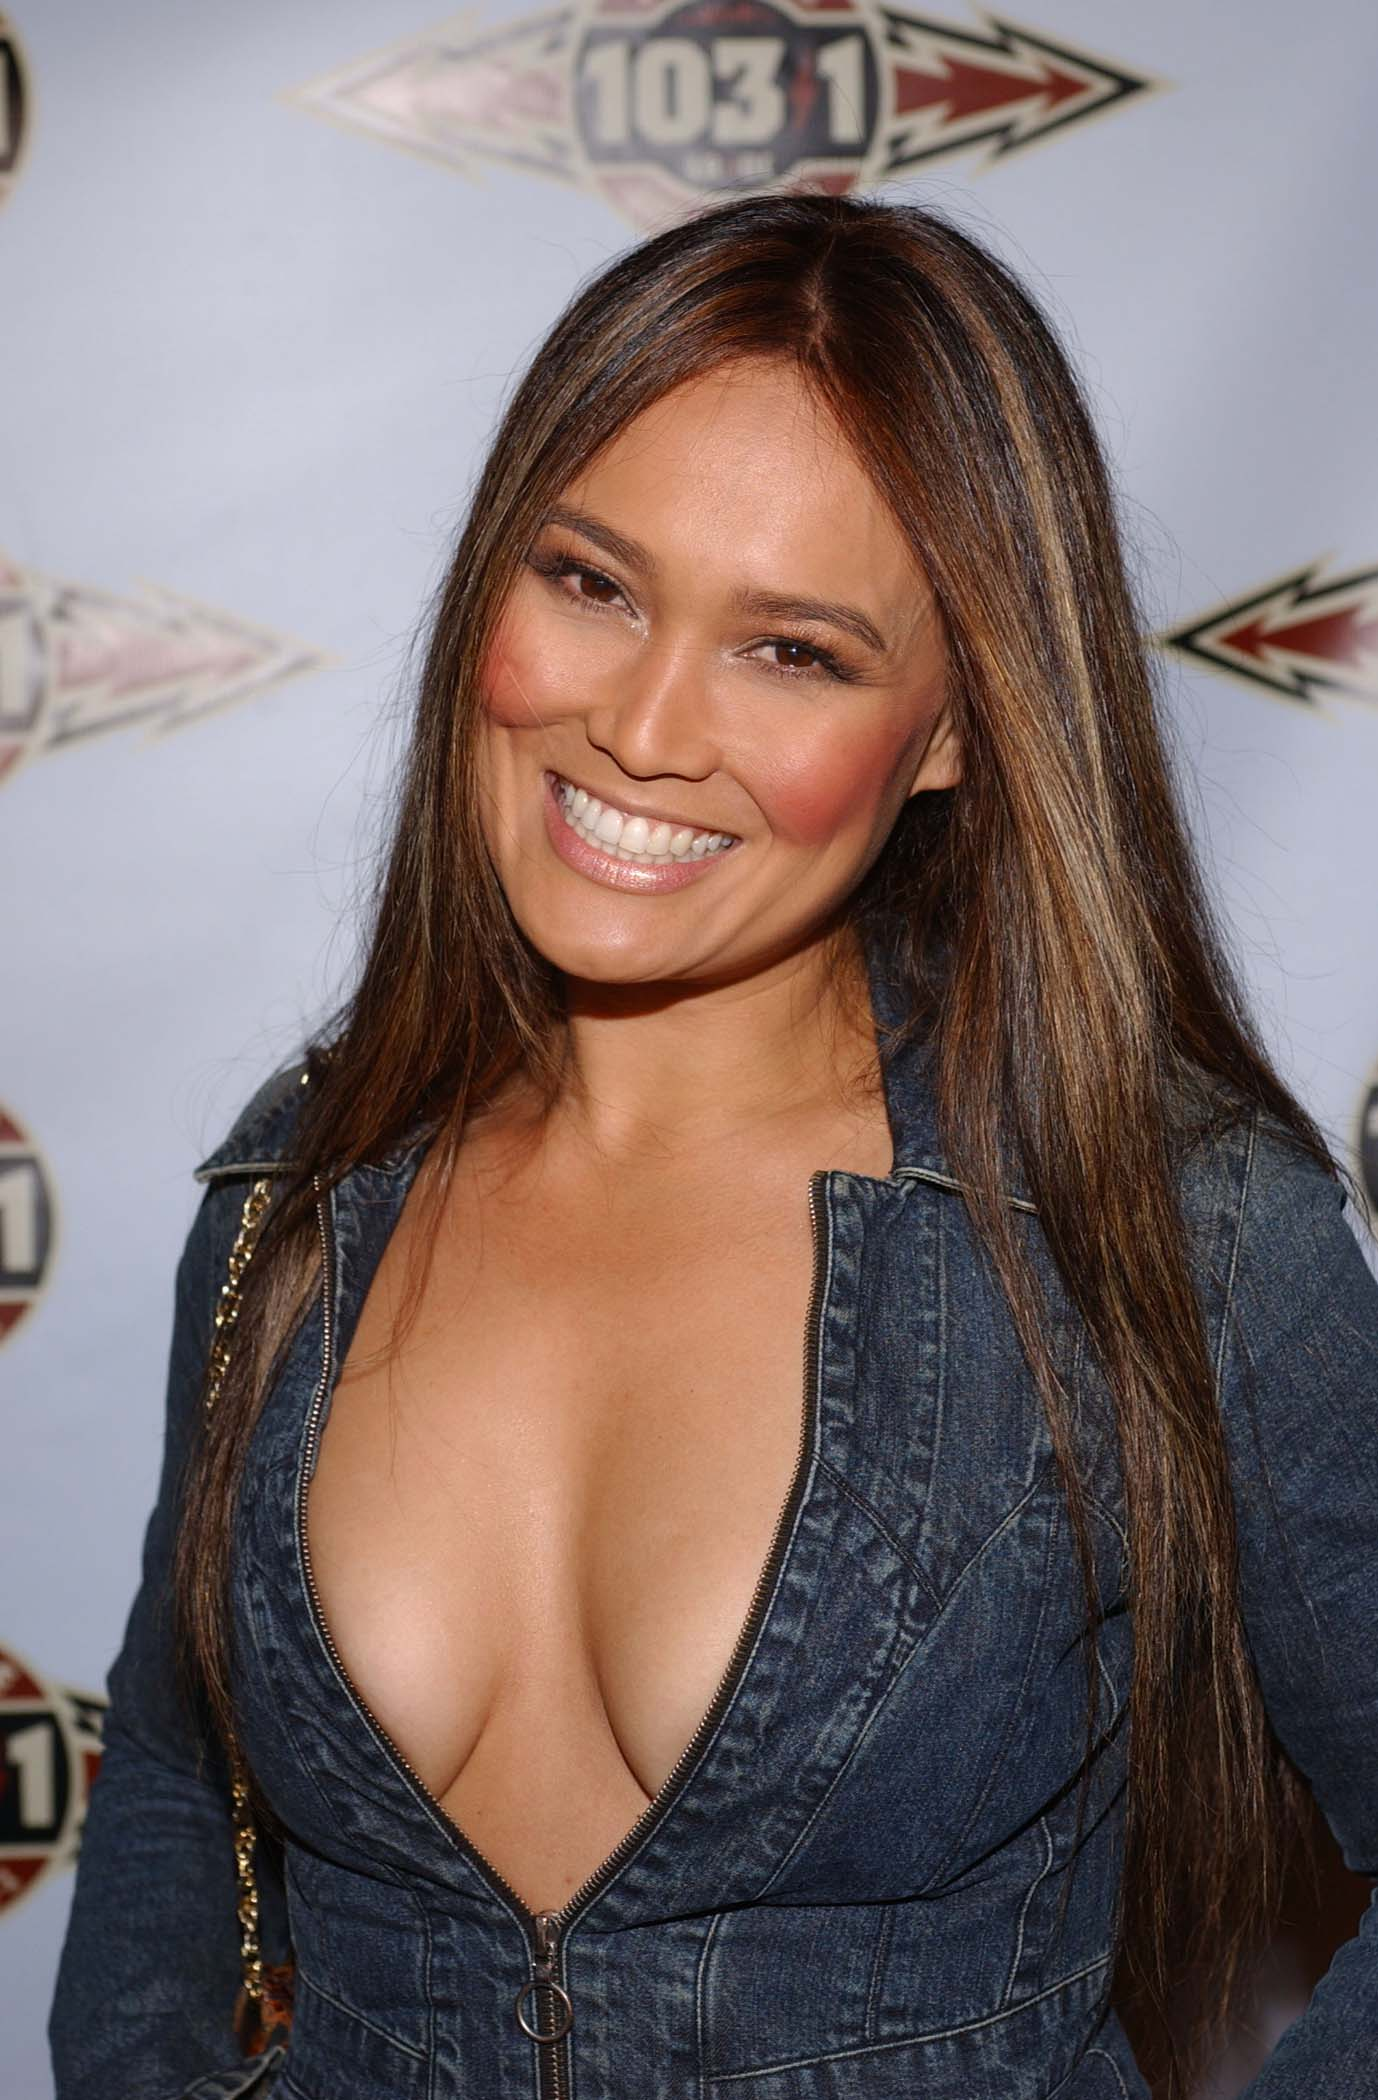 Tia Carrere photo, pics, wallpaper - photo #161106